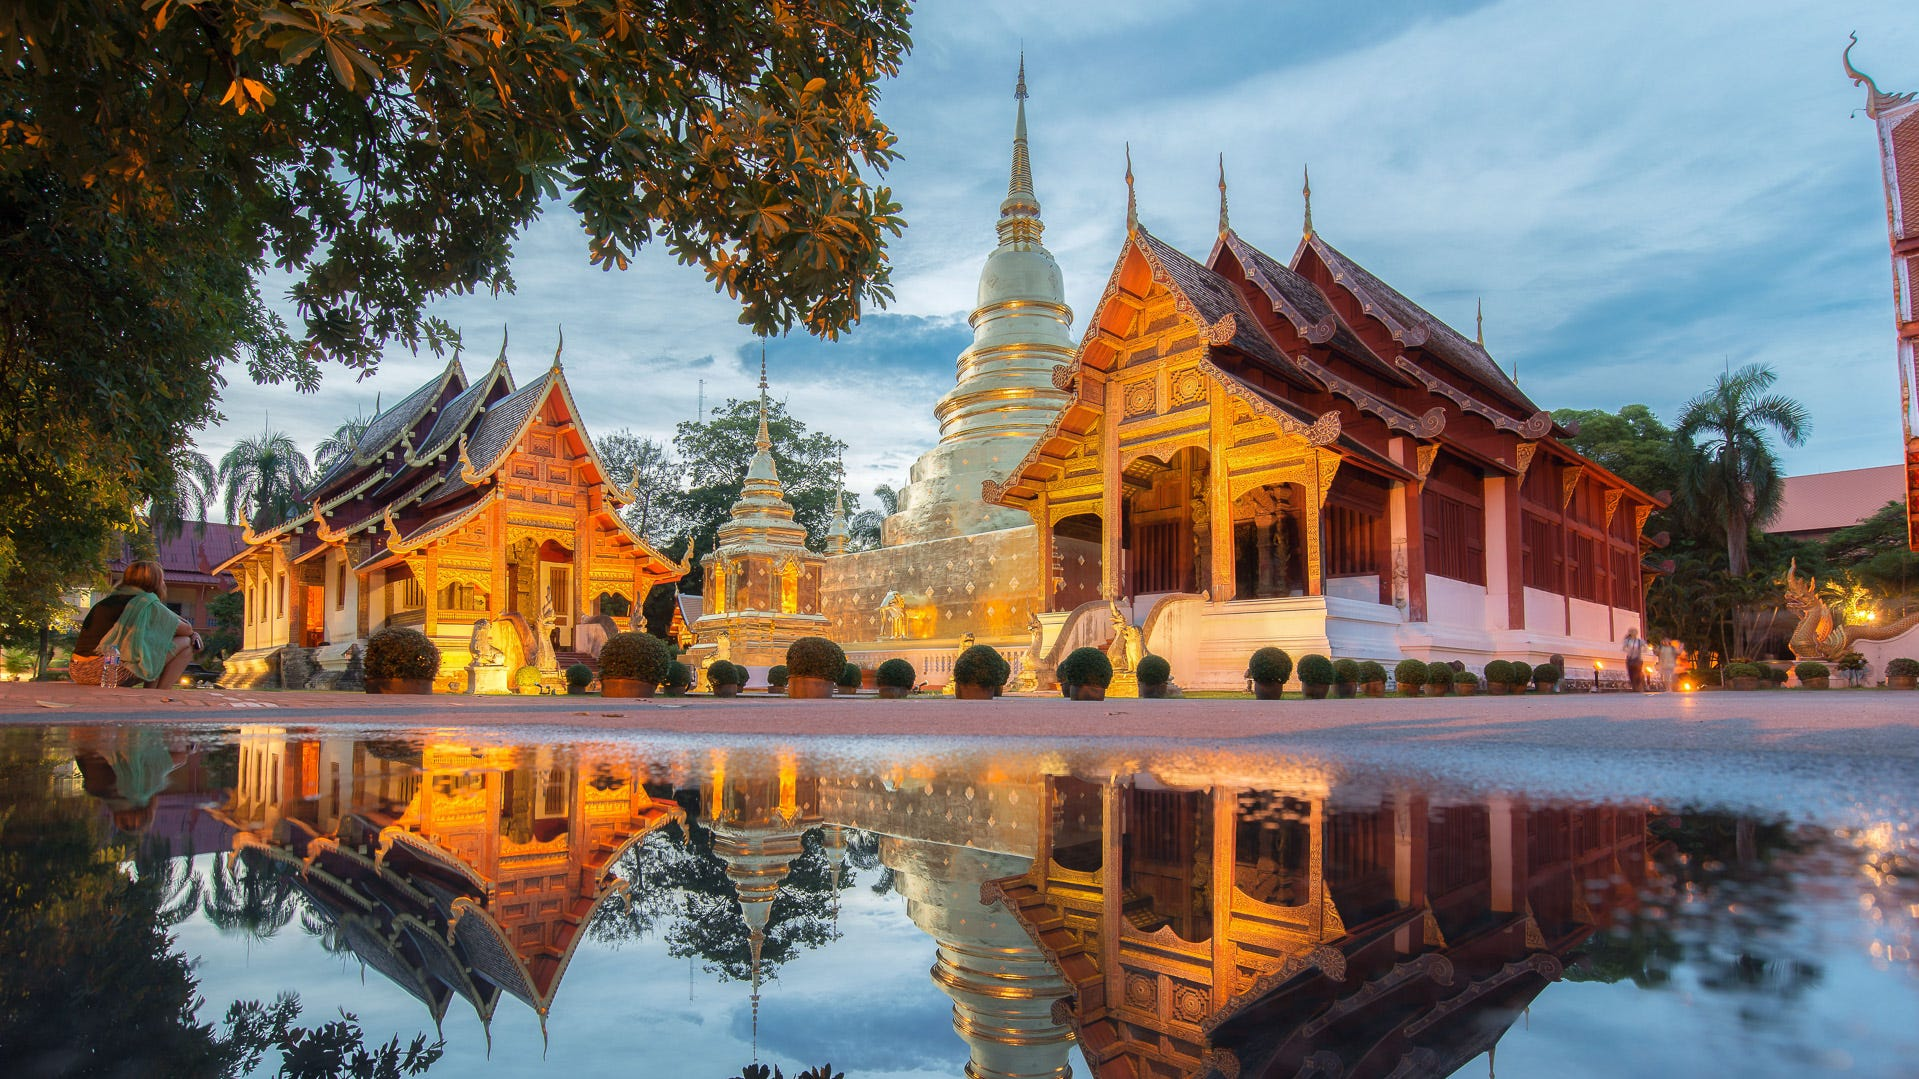 4. Chiang Mai, Thailand. Total cost per day: $10.11. Thailand is one of the cheapest countries to visit: There are four cities in Thailand that made our ranking, but Chiang Mai is the cheapest, with hostels costing an average of $3.15 per night and meals costing an average of $1.58.  Located in northern Thailand, this city in the mountains is the site of numerous stunning Buddhist temples, as well as galleries, boutiques, cafes and restaurants. Chiang Mai's signature dish is its khao soi — egg noodles in curry — so be sure to get this savory meal while you're there.